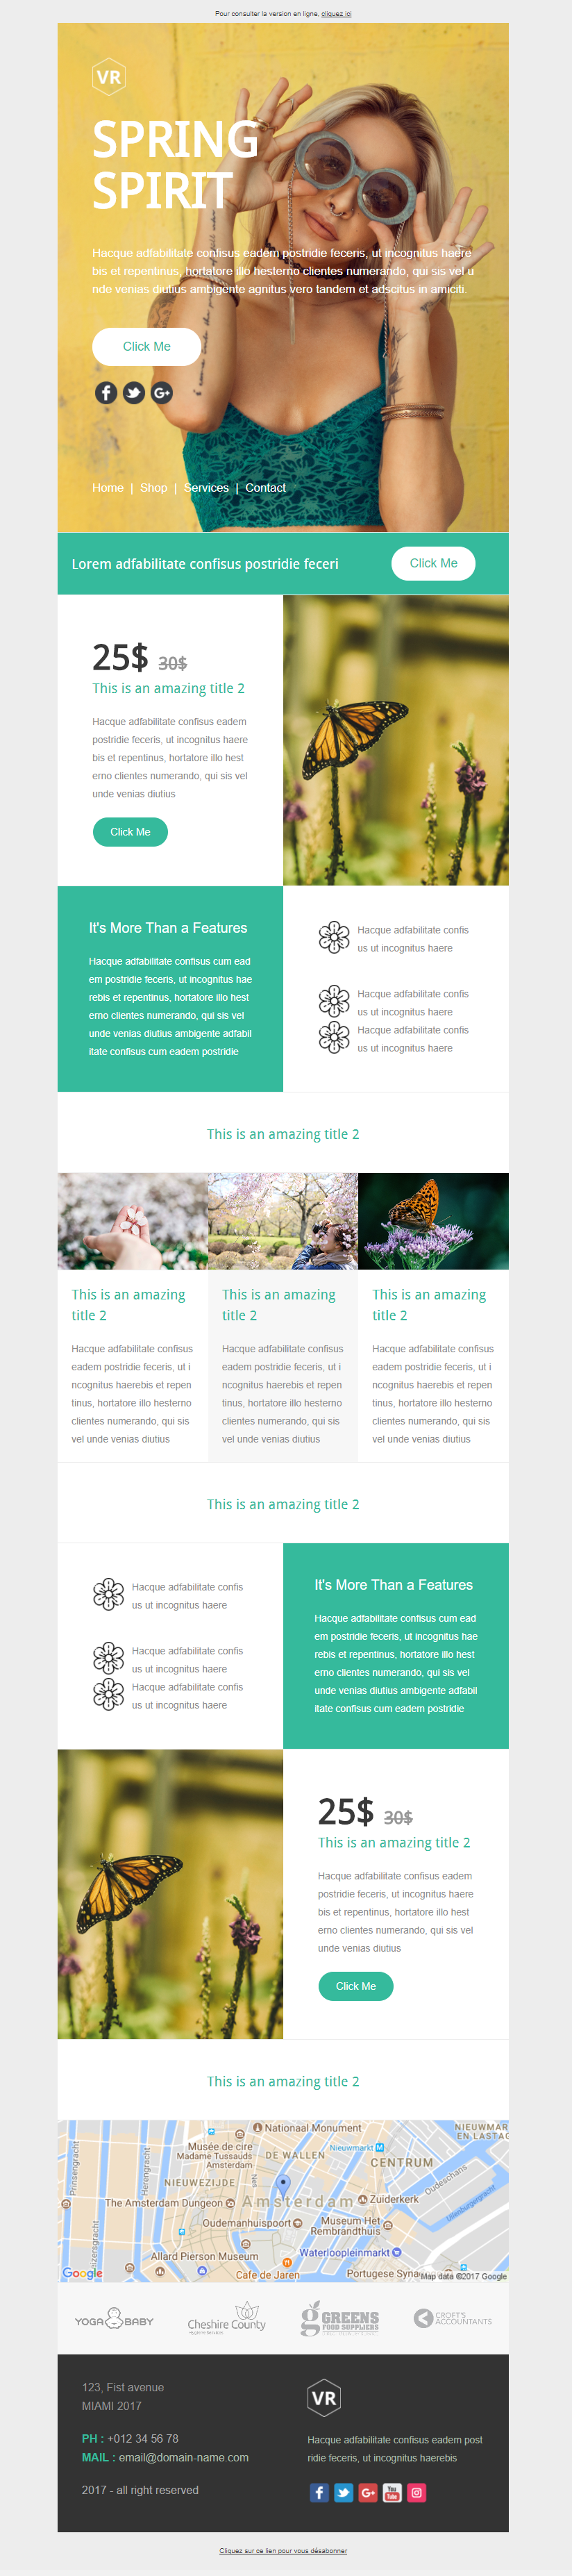 Exemple newsletter VR Spring